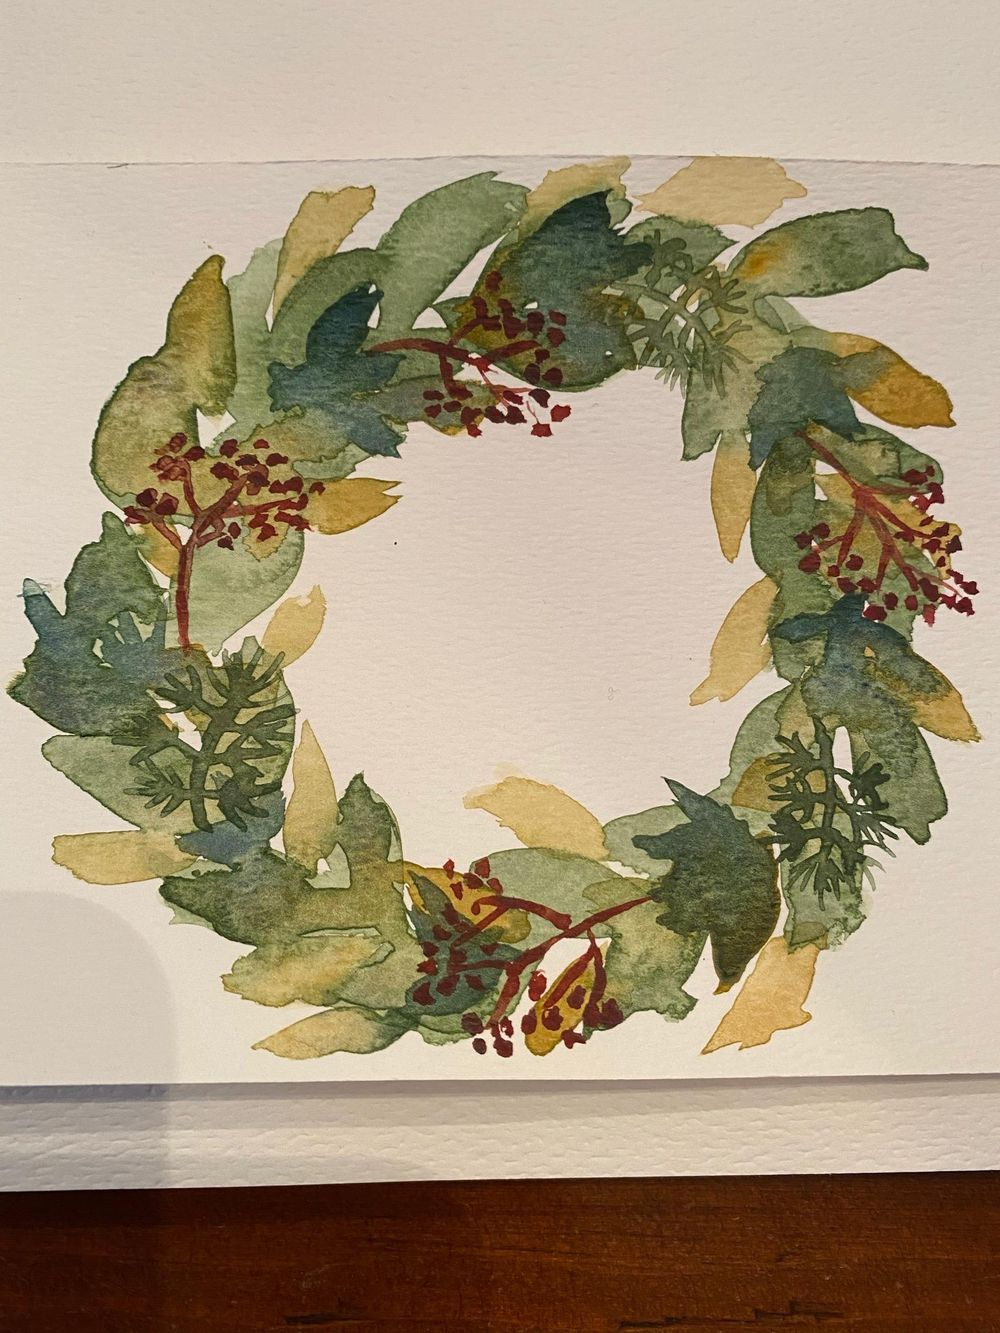 Wreath - image 2 - student project